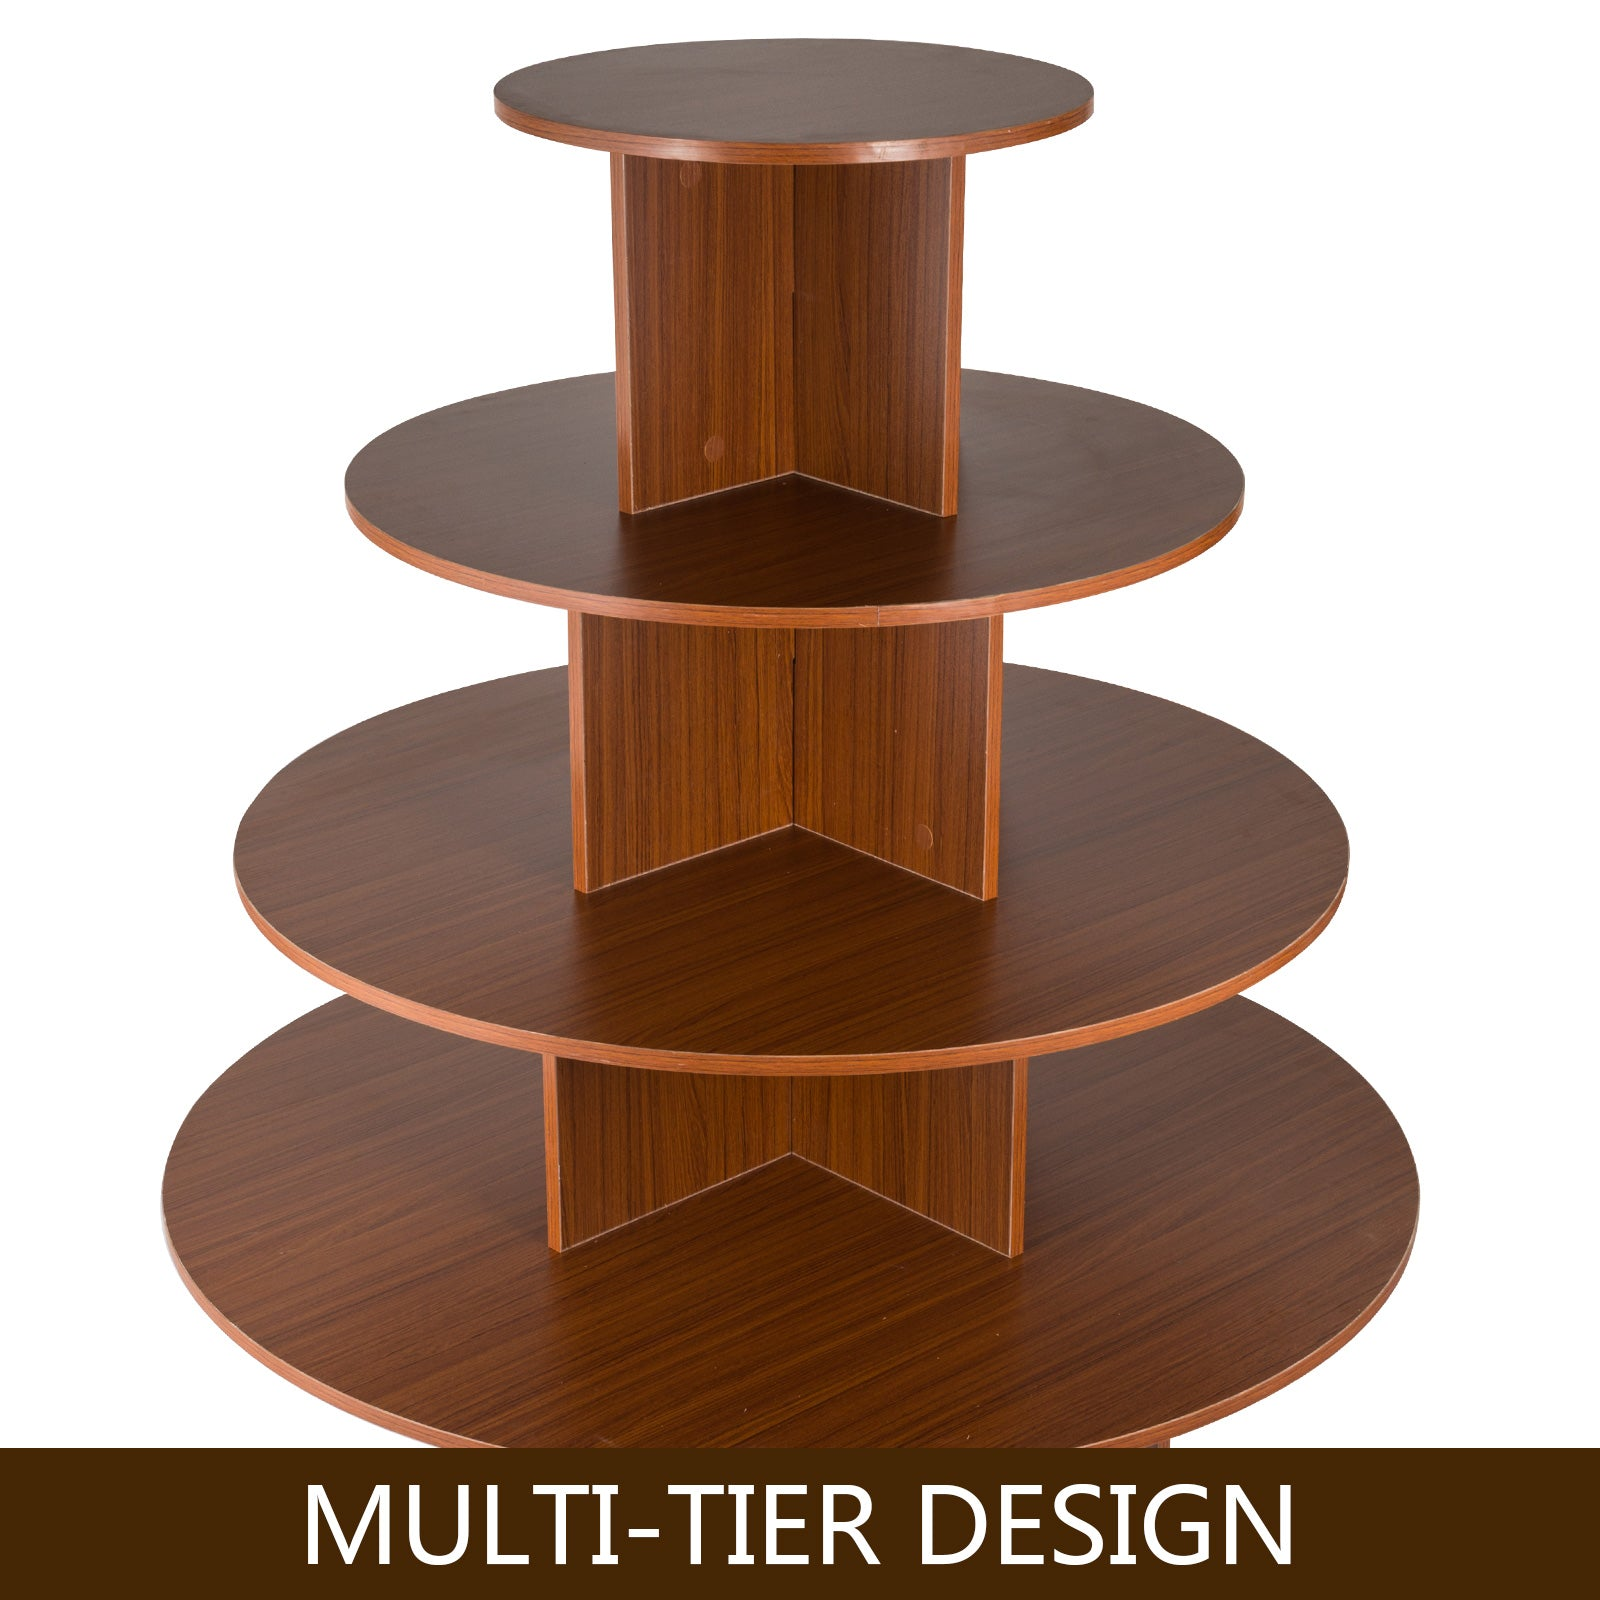 4 Tiers Round Display Stand Retail Display Assemble Teak Wood Color Table Hot